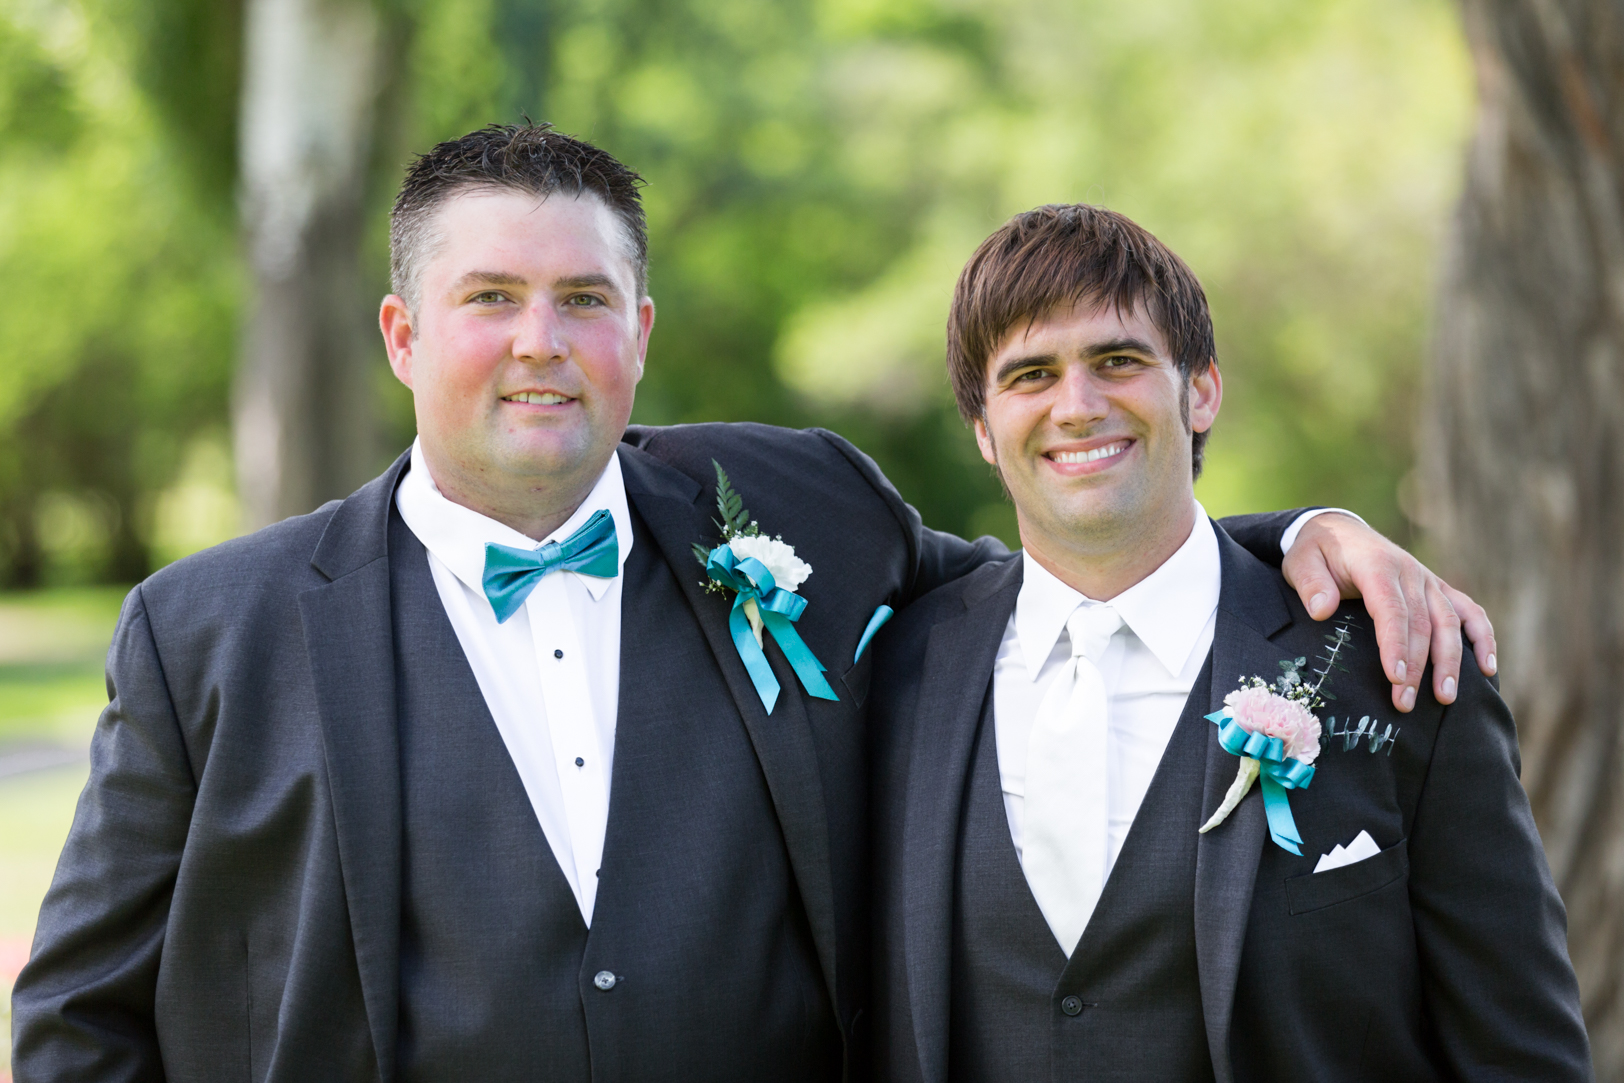 Photo of Groom and Best Man